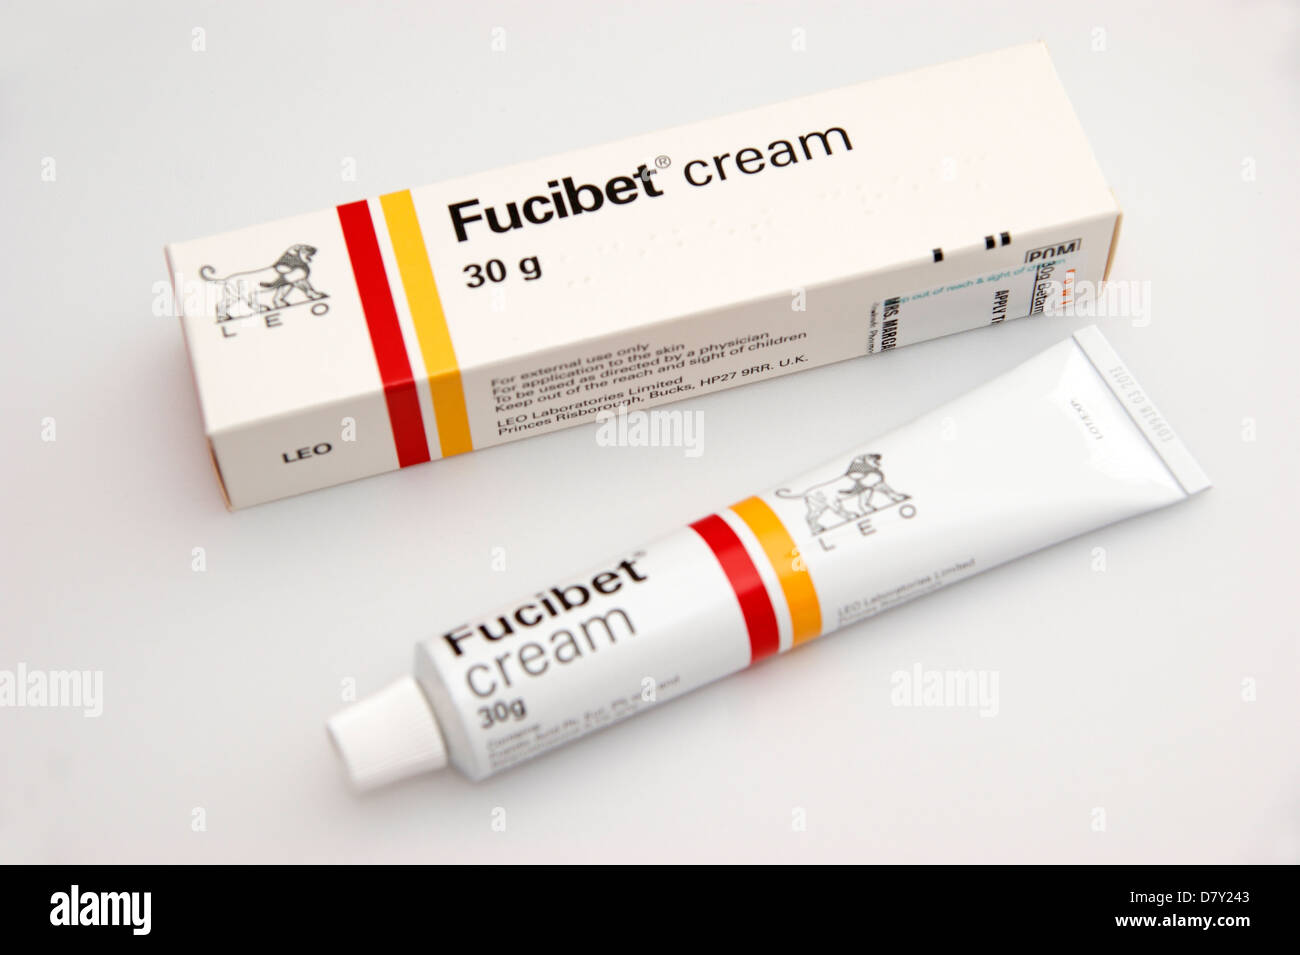 fucibet cream betamethasone valerate corticosteroid steroid cream stock photo 56528083 alamy. Black Bedroom Furniture Sets. Home Design Ideas